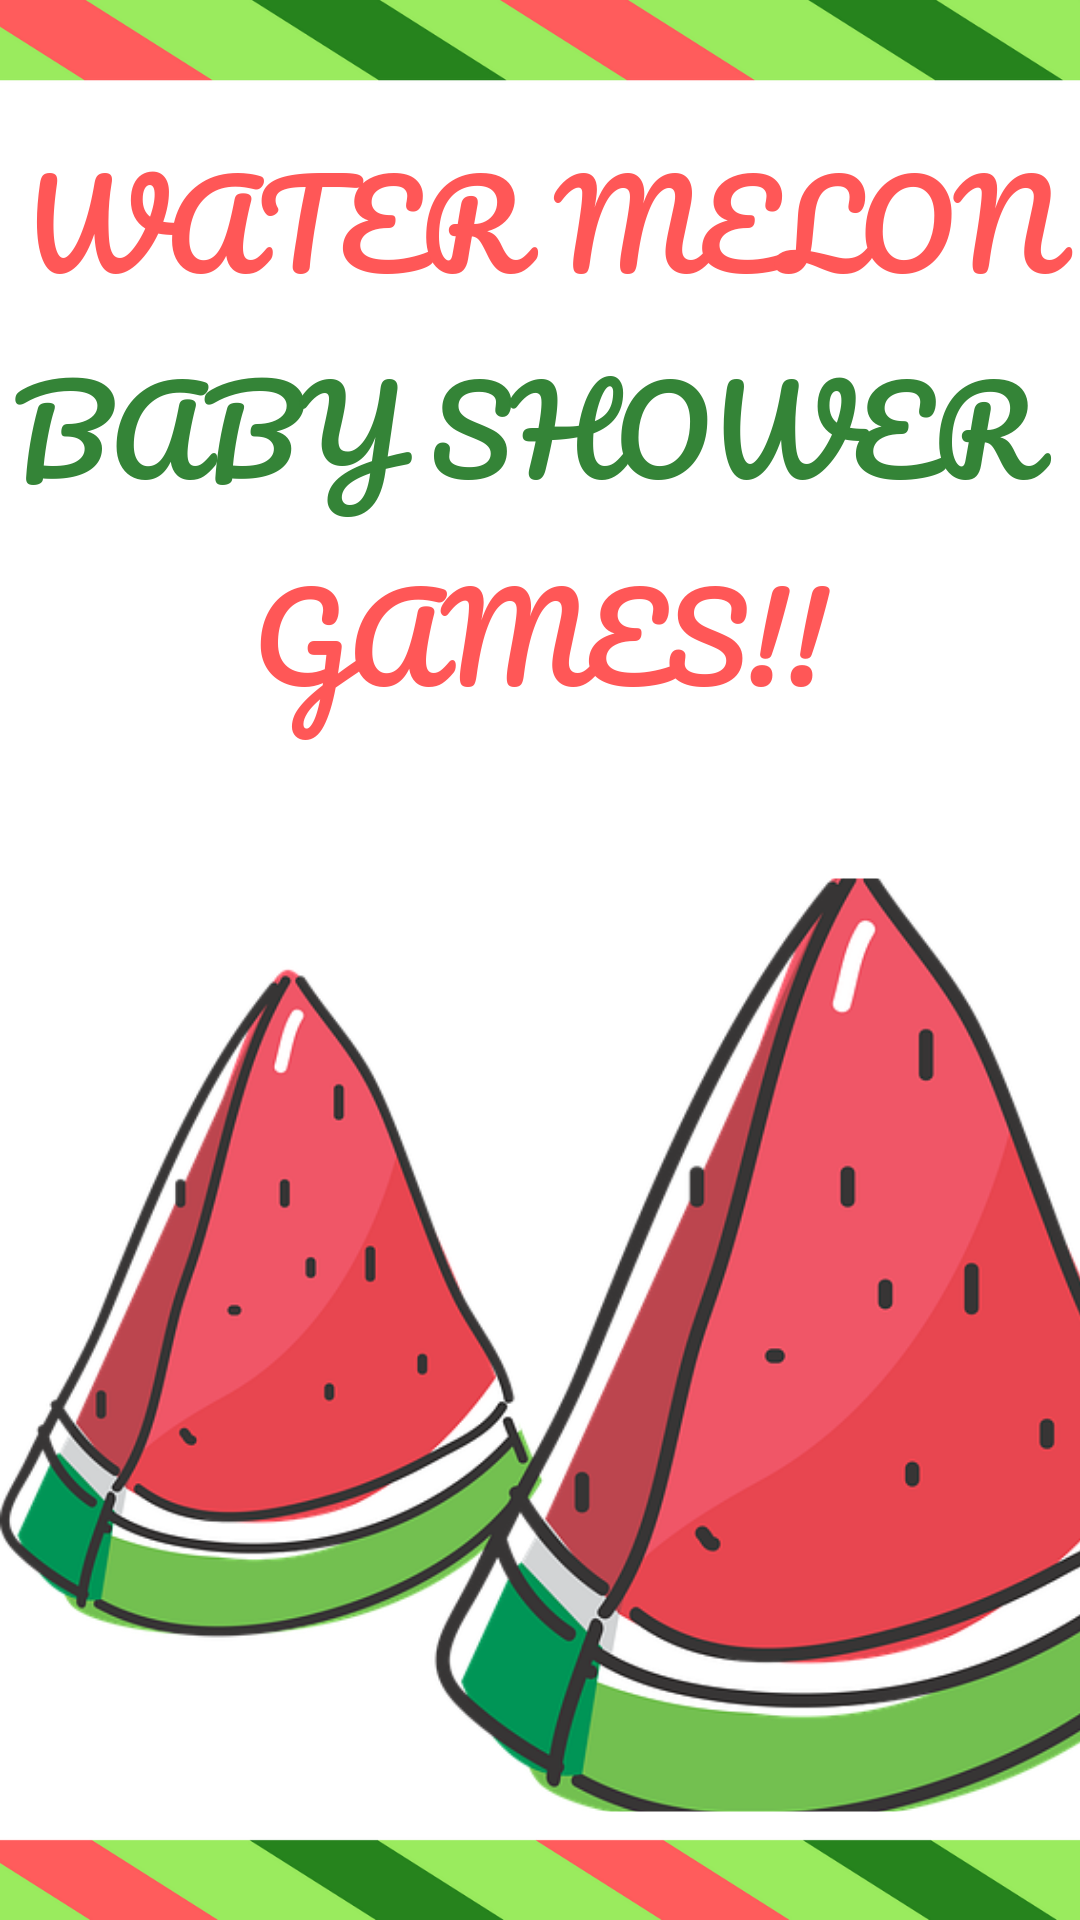 Watermelon Baby Shower Games And Decorations